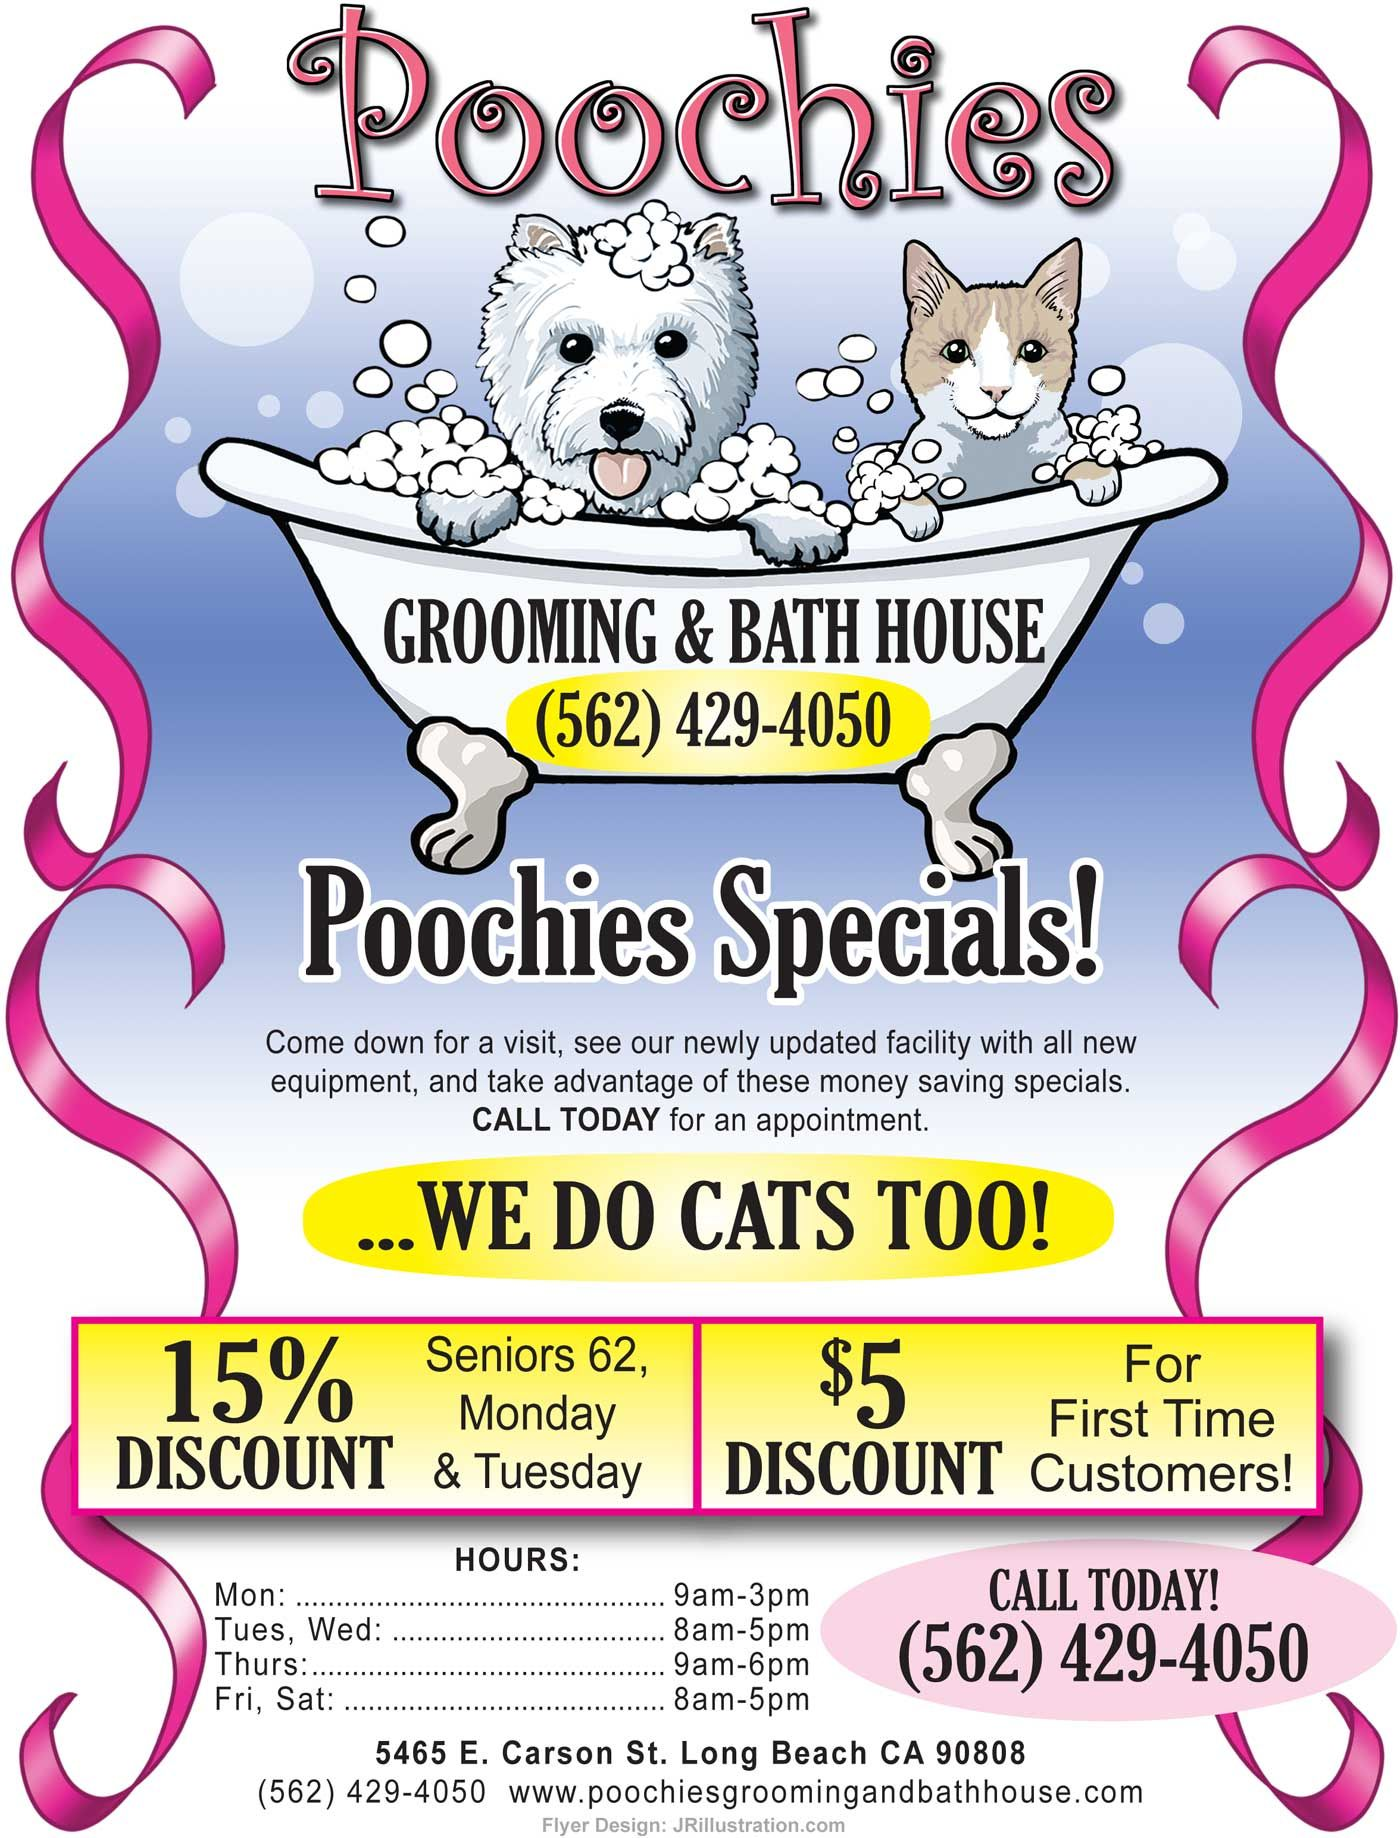 Grand Opening Pet Groomers Flyers Grooming And Bath House In Long Beach California Dog And Cat Grooming Dog Grooming Salons Dog Grooming Business Grooming